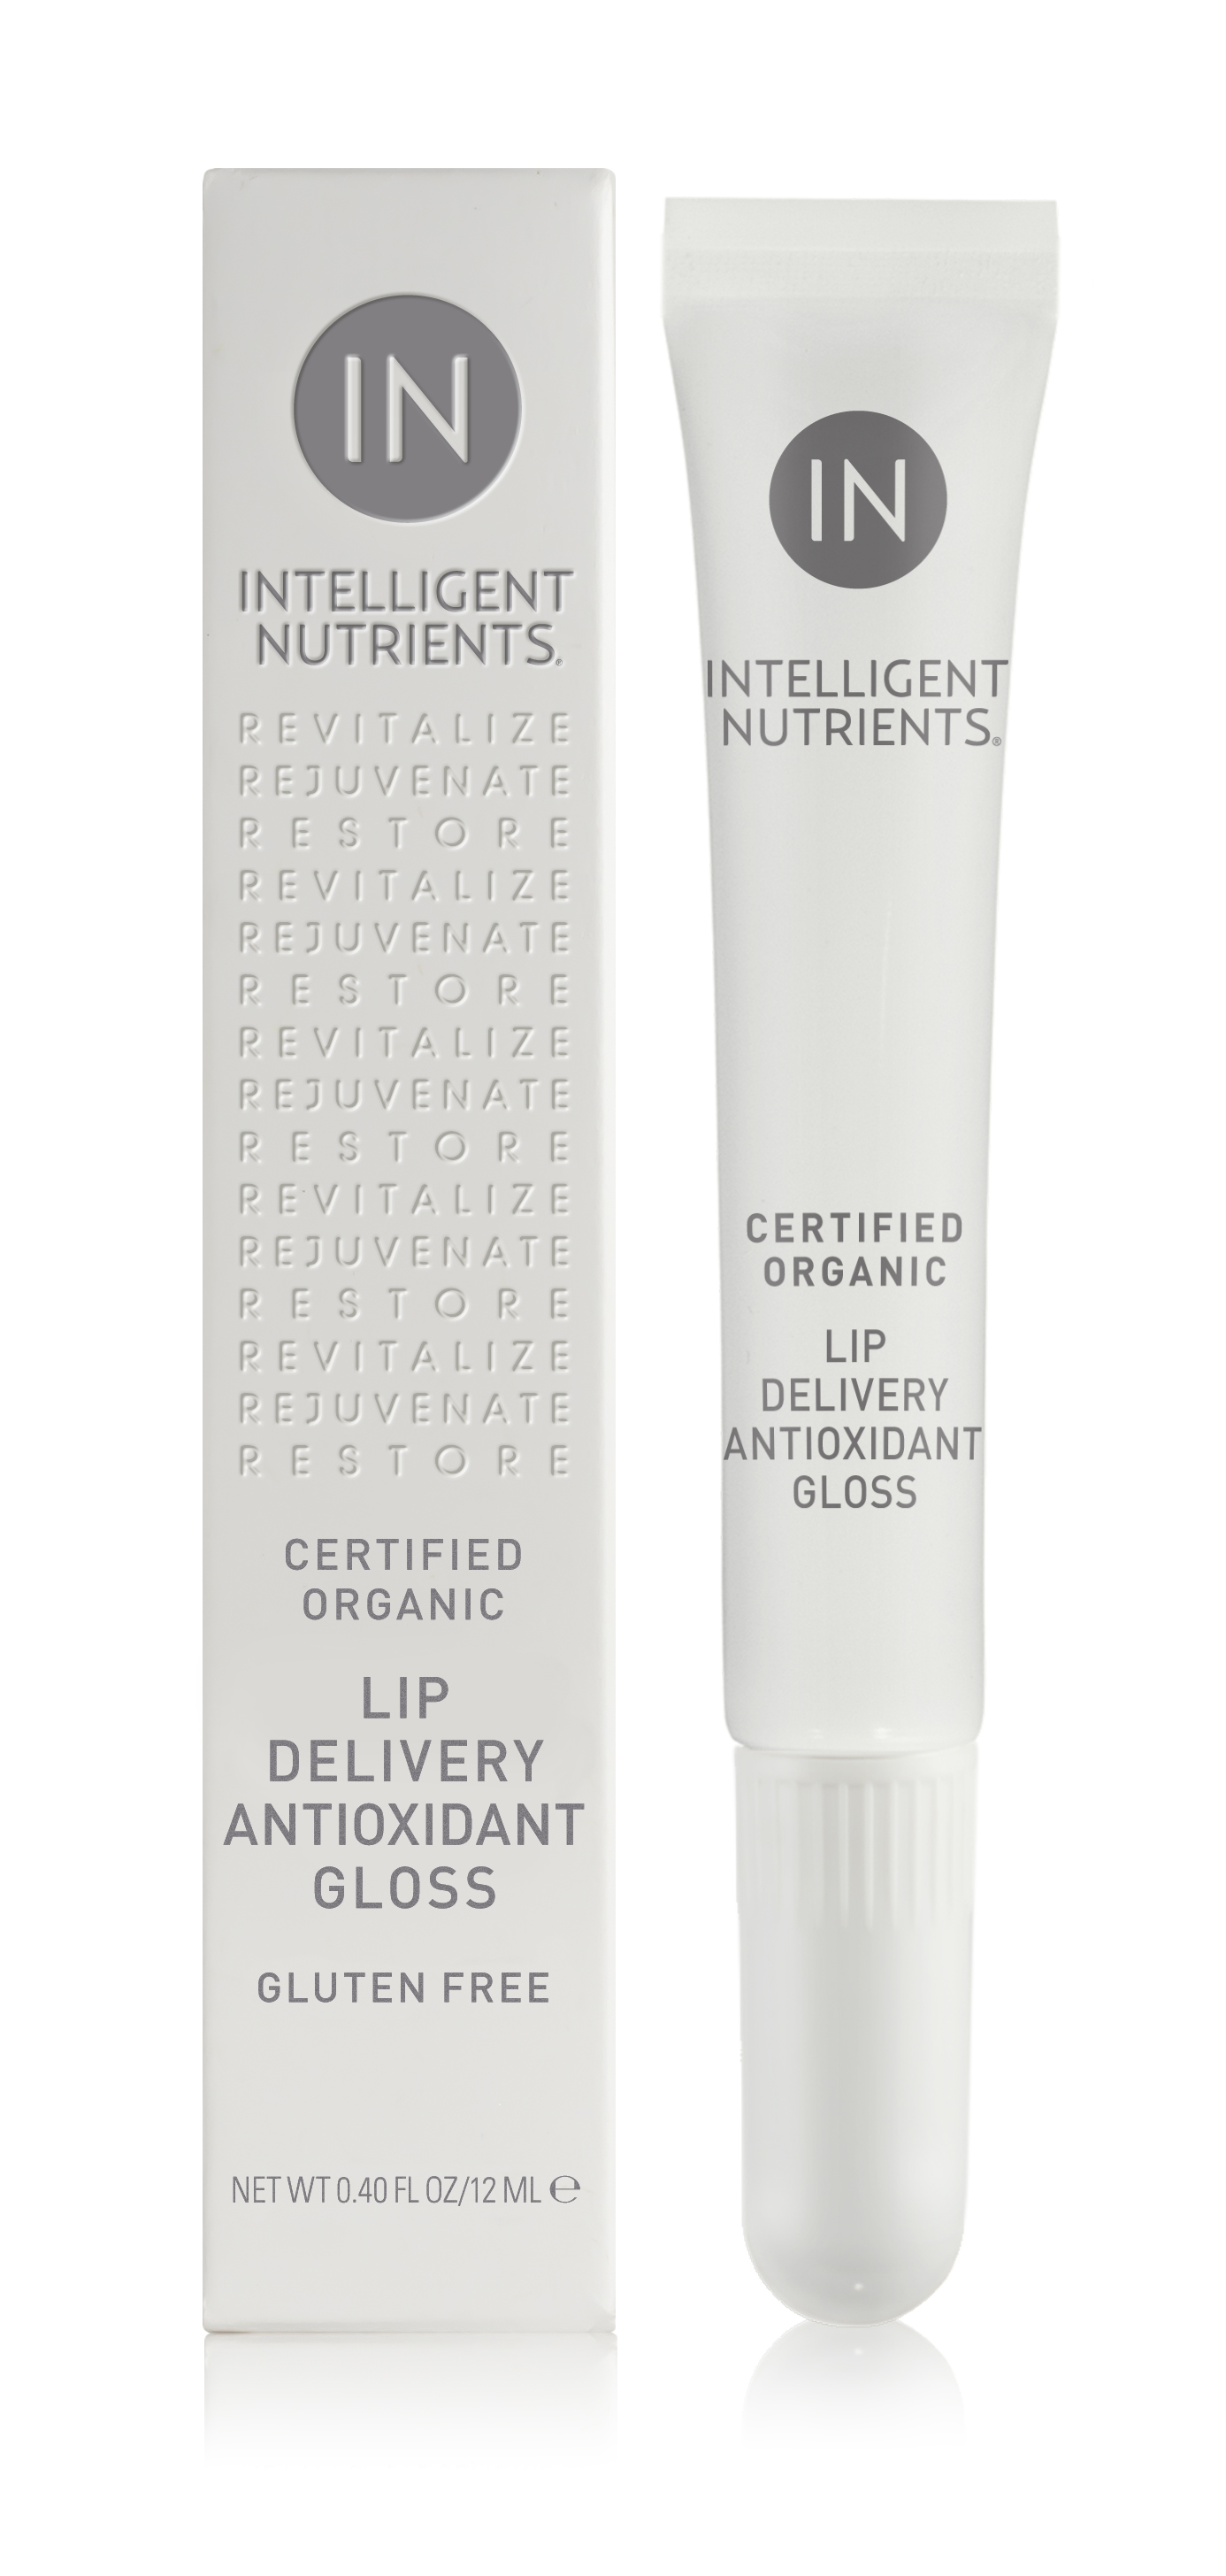 Lip Delivery Antioxidant Gloss - Clear Frosting (DKK190/12g)